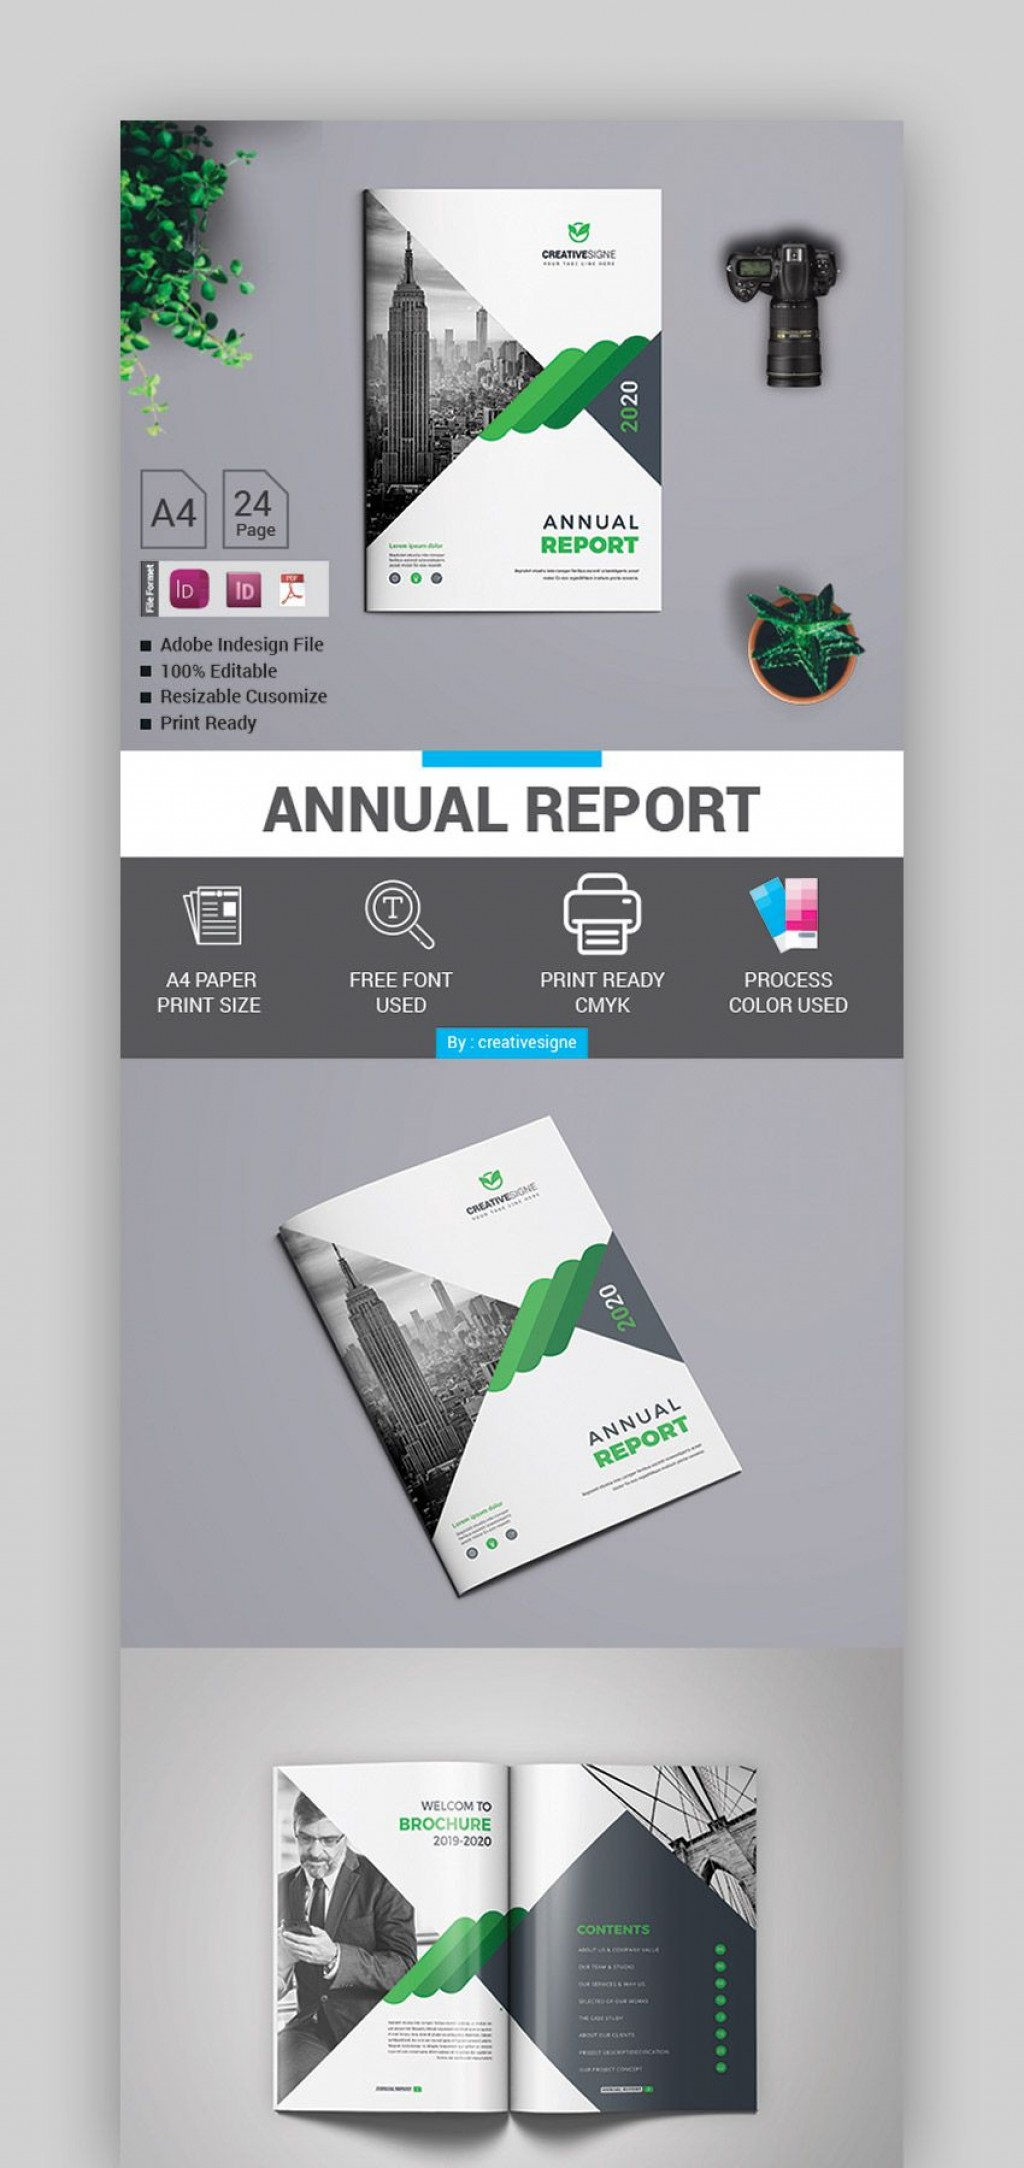 004 Unique Free Indesign Annual Report Template Download Concept Large